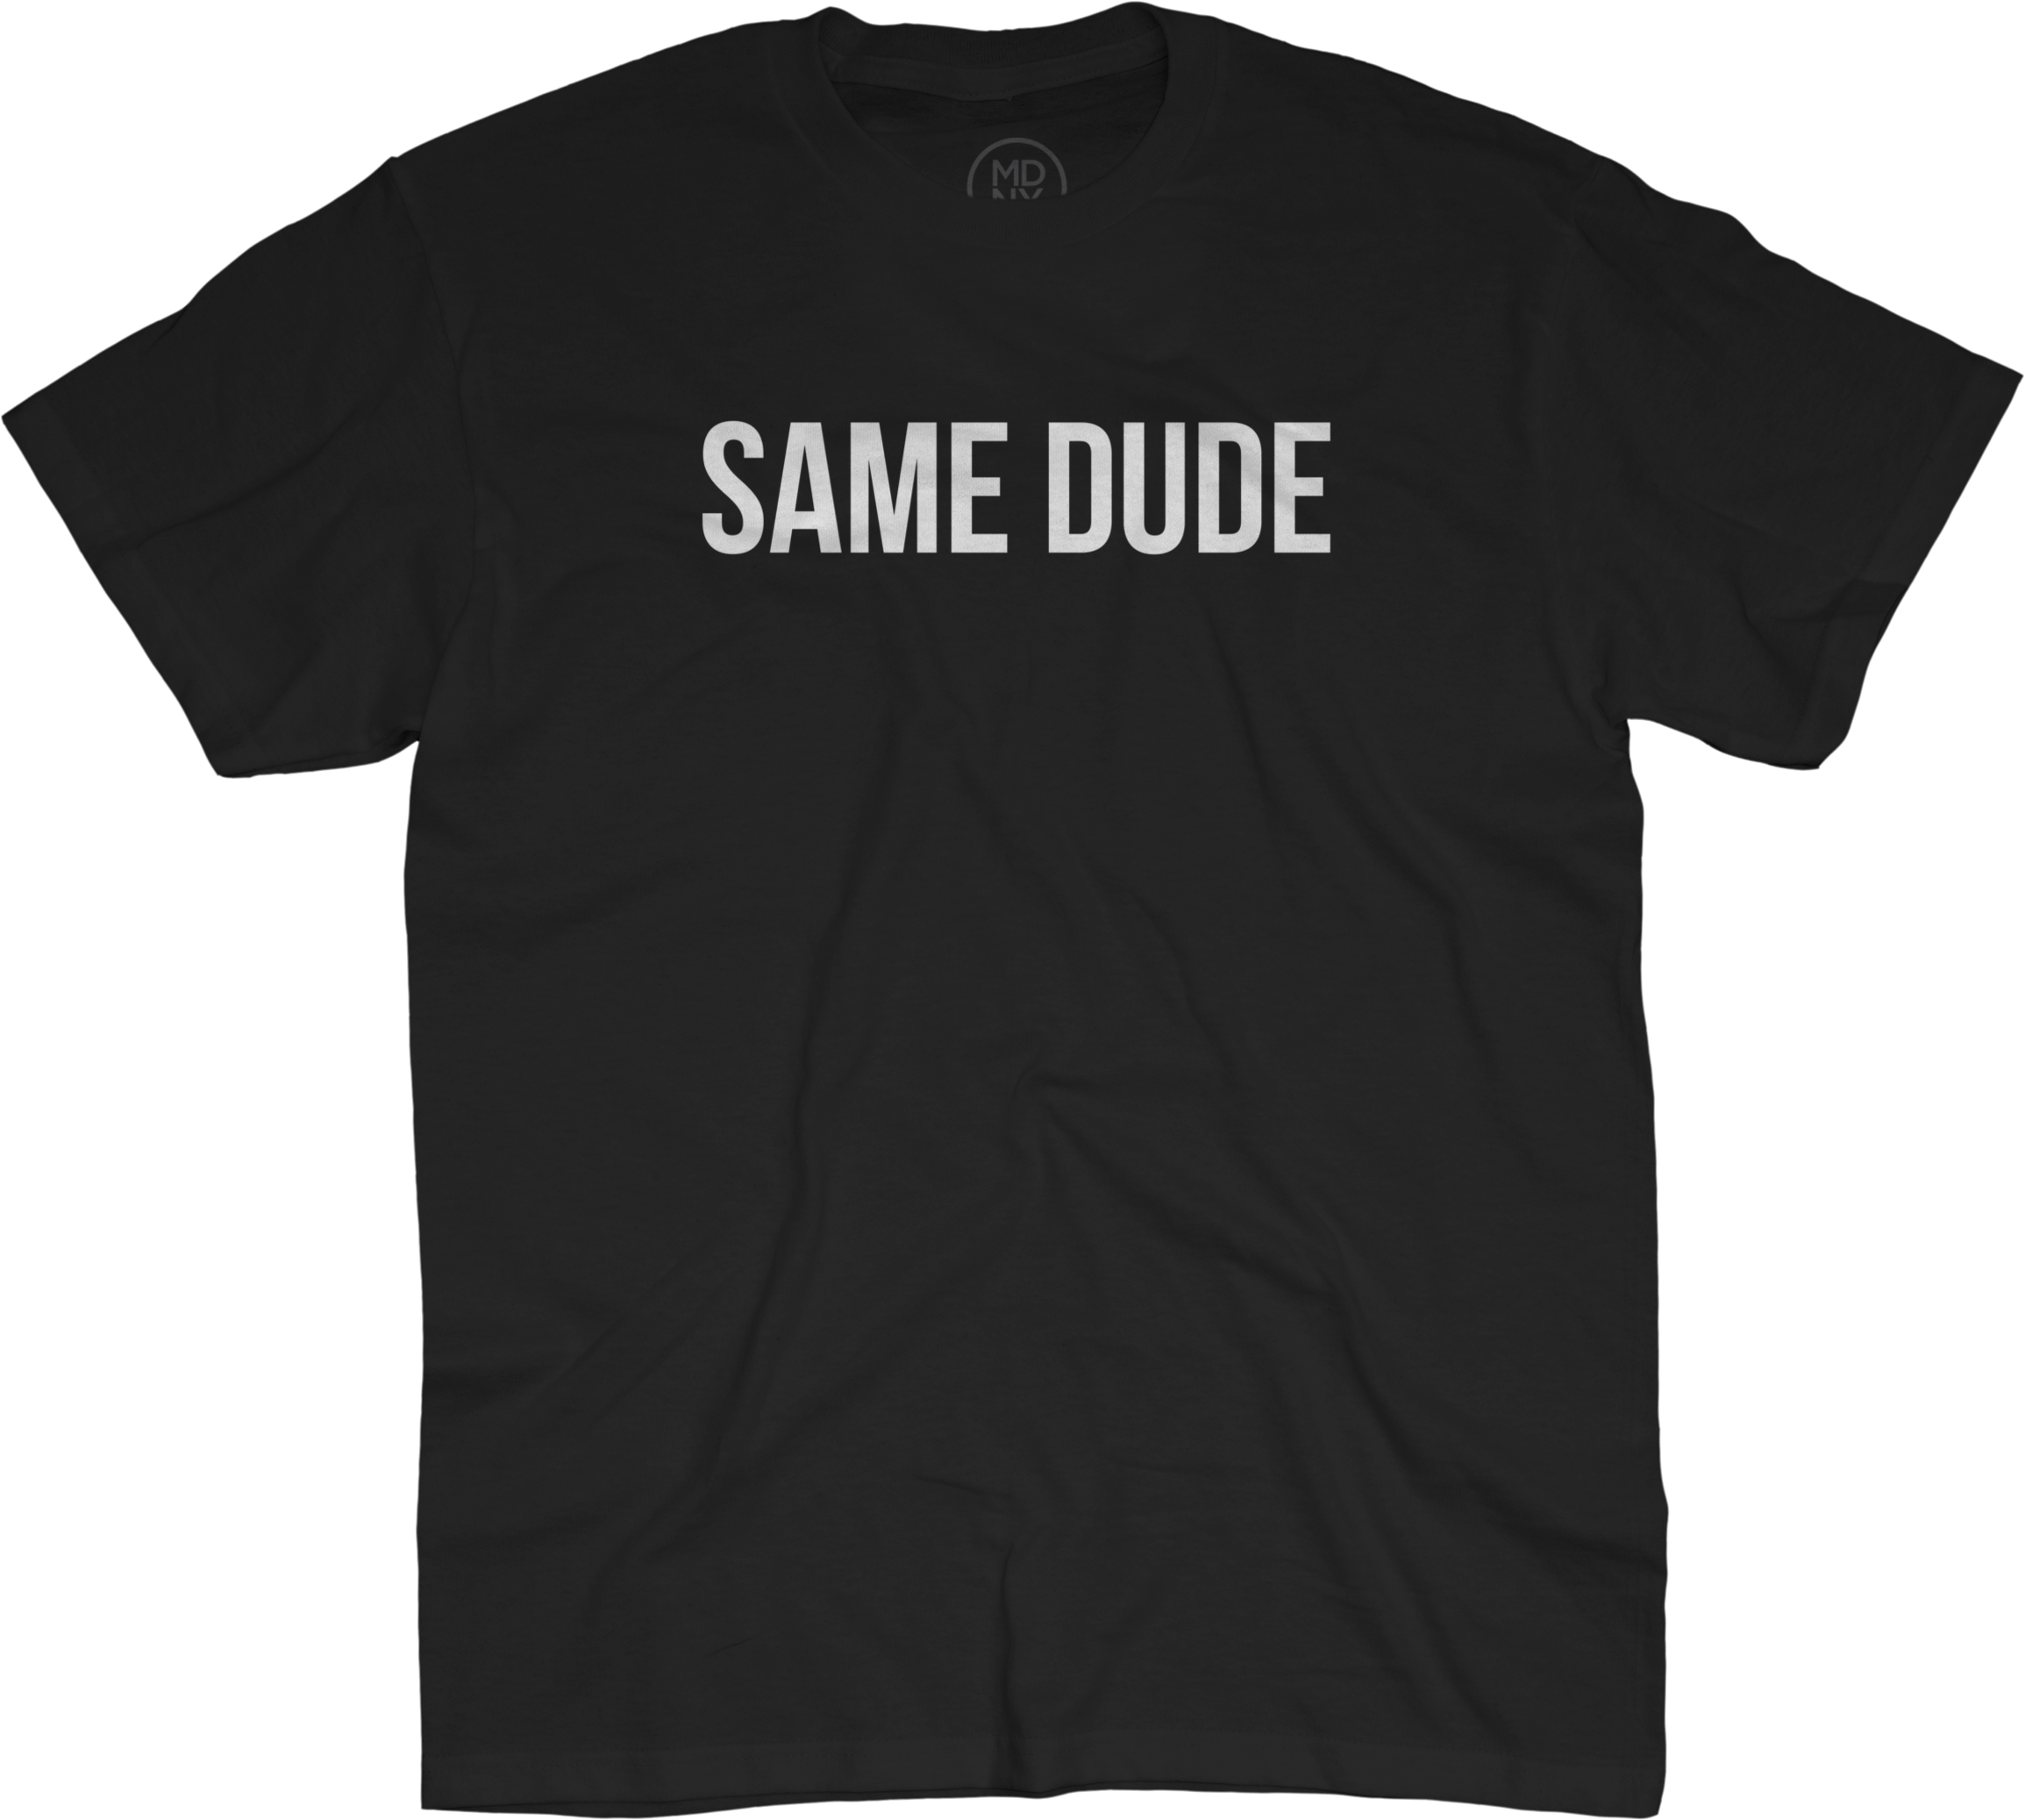 Same Dude T-Shirt - Black